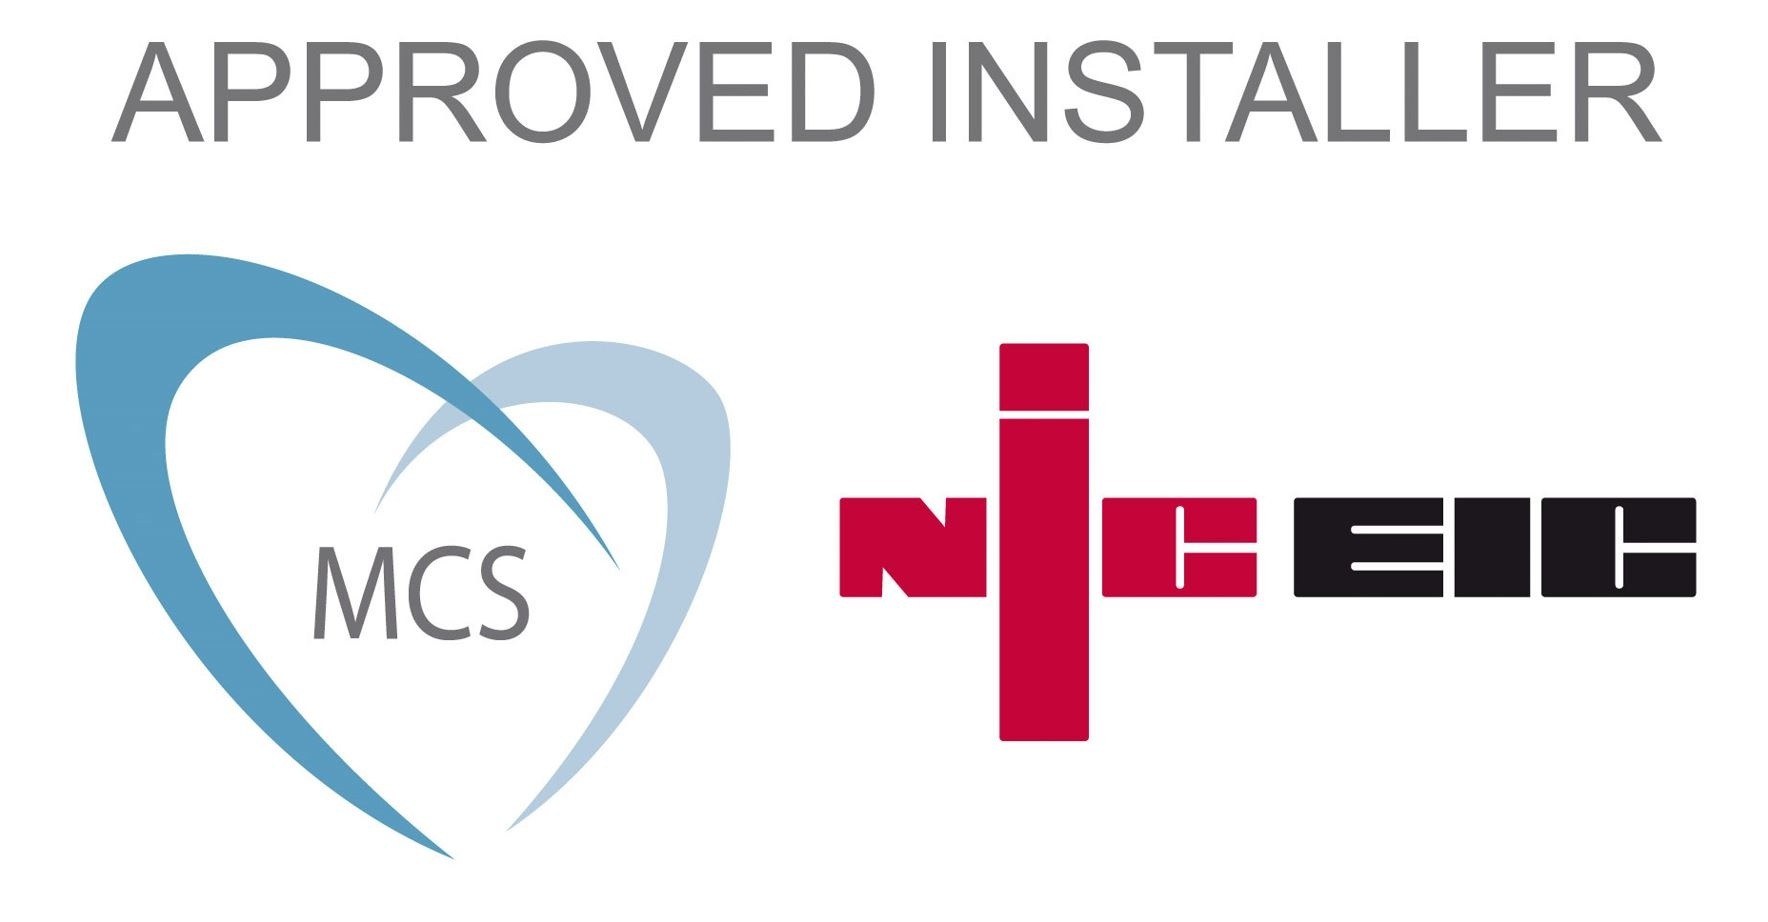 Elliotts Premier Roofing is an MCS accredited installer